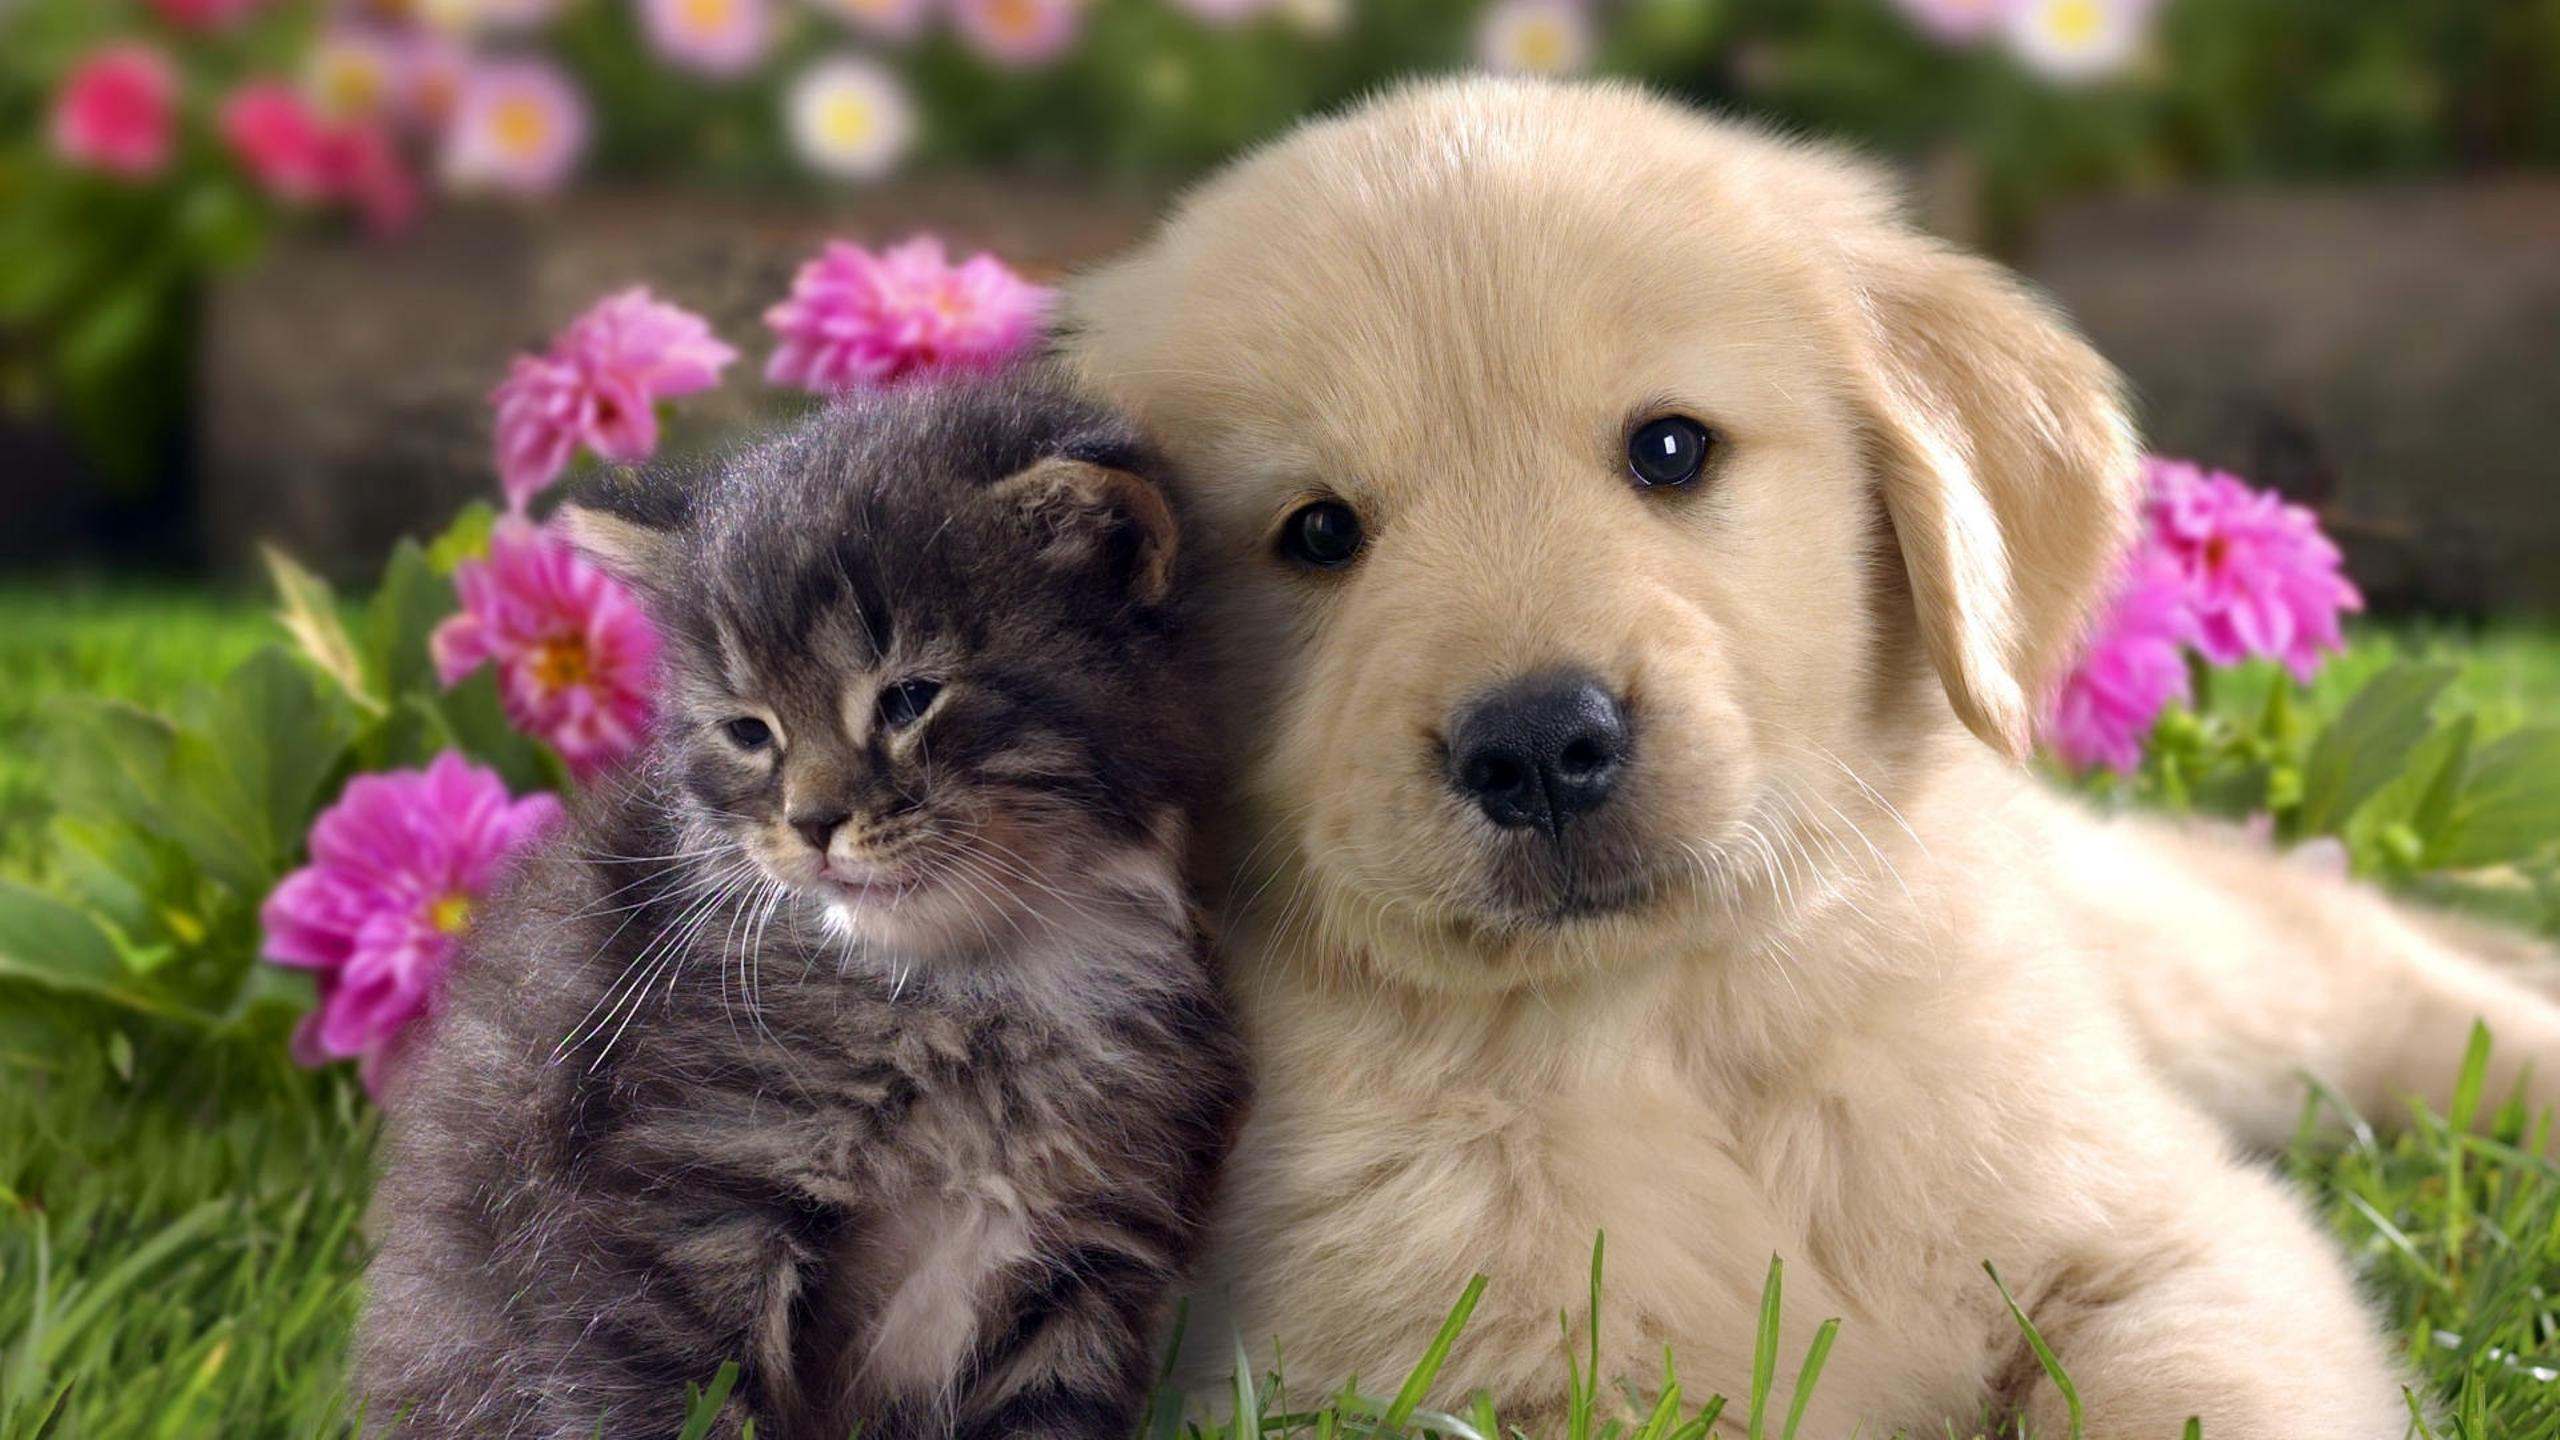 sweet dog and cat in the garden wallpaper download 2560x1440